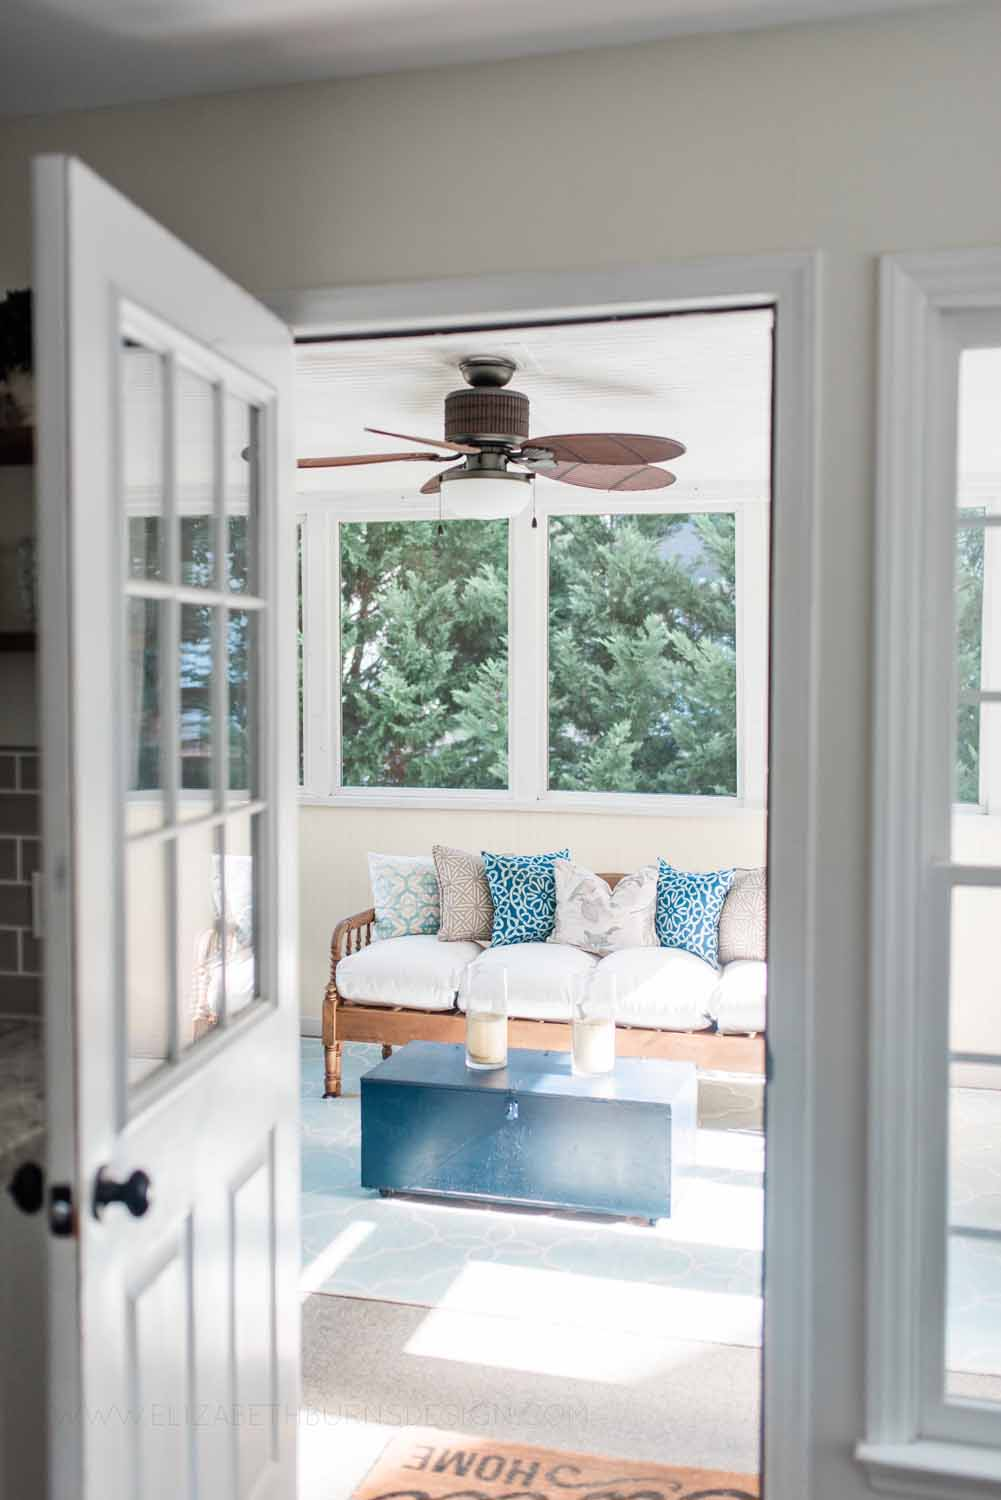 Elizabeth Burns Design Raleigh Interior Designer 1990s house remodel before and after Budget Screened in Porch Design Makeover Yellow Aqua Navy (1).jpg